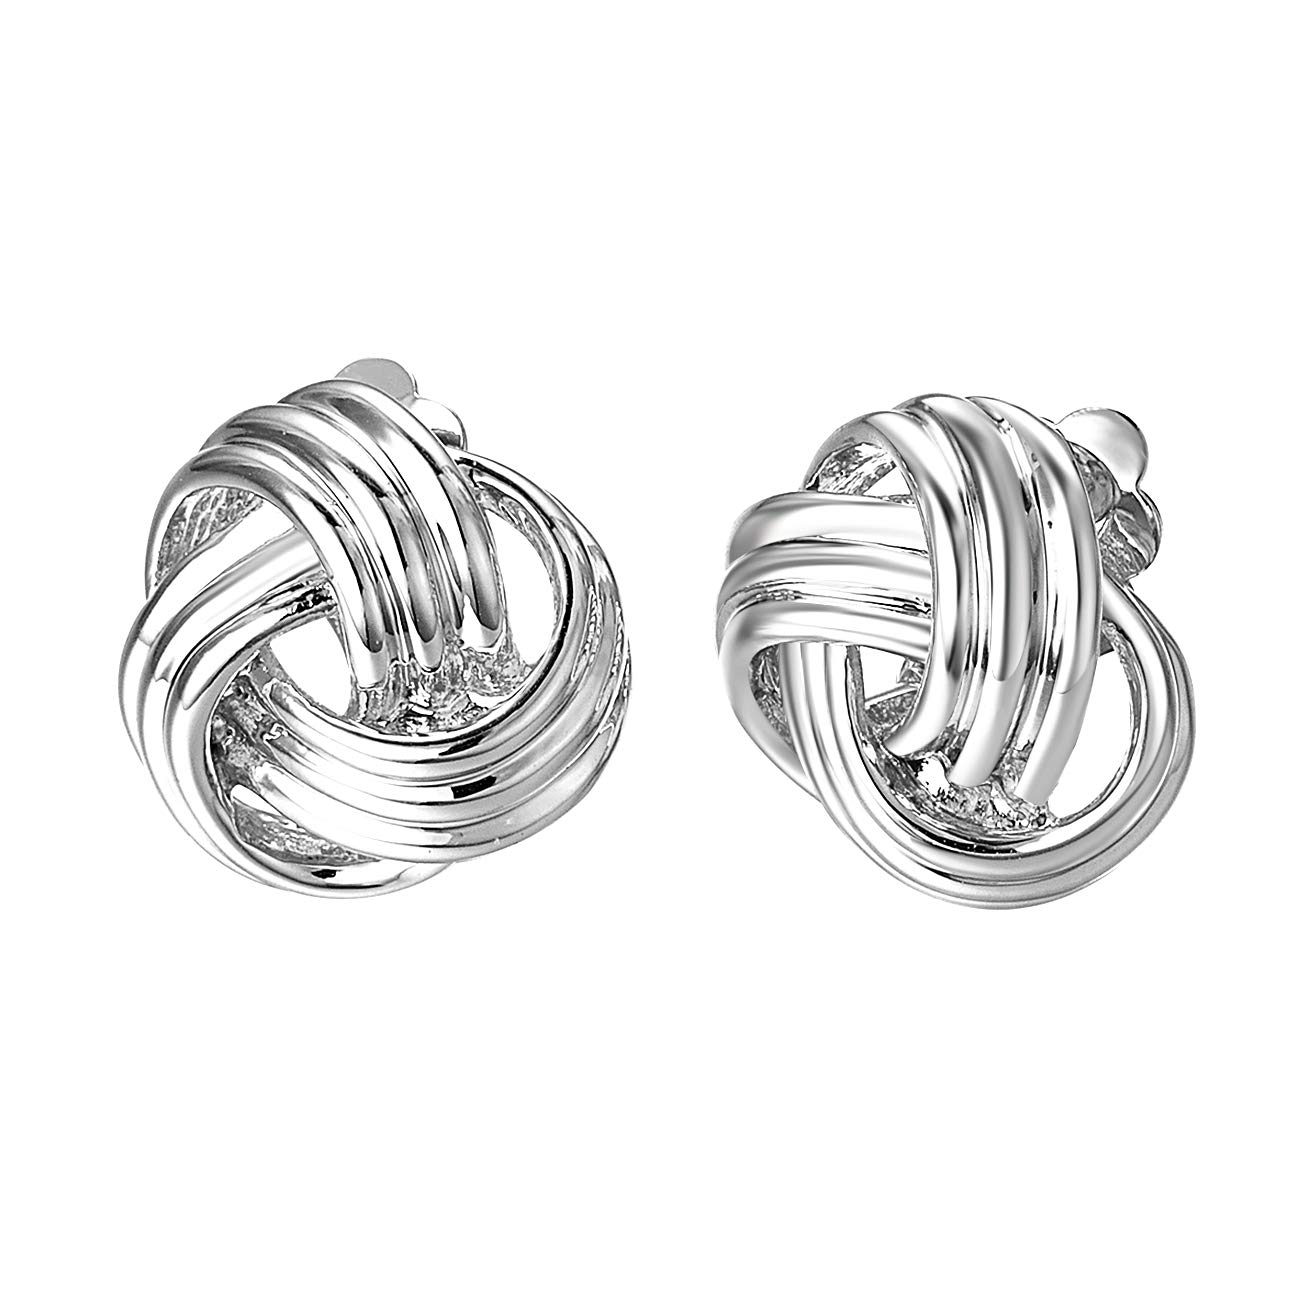 VOGEM Silver Clip On Earrings For Womens 18K Gold Plated Wrap Twisted Big Knot Earrings Non Pierced Jewellery